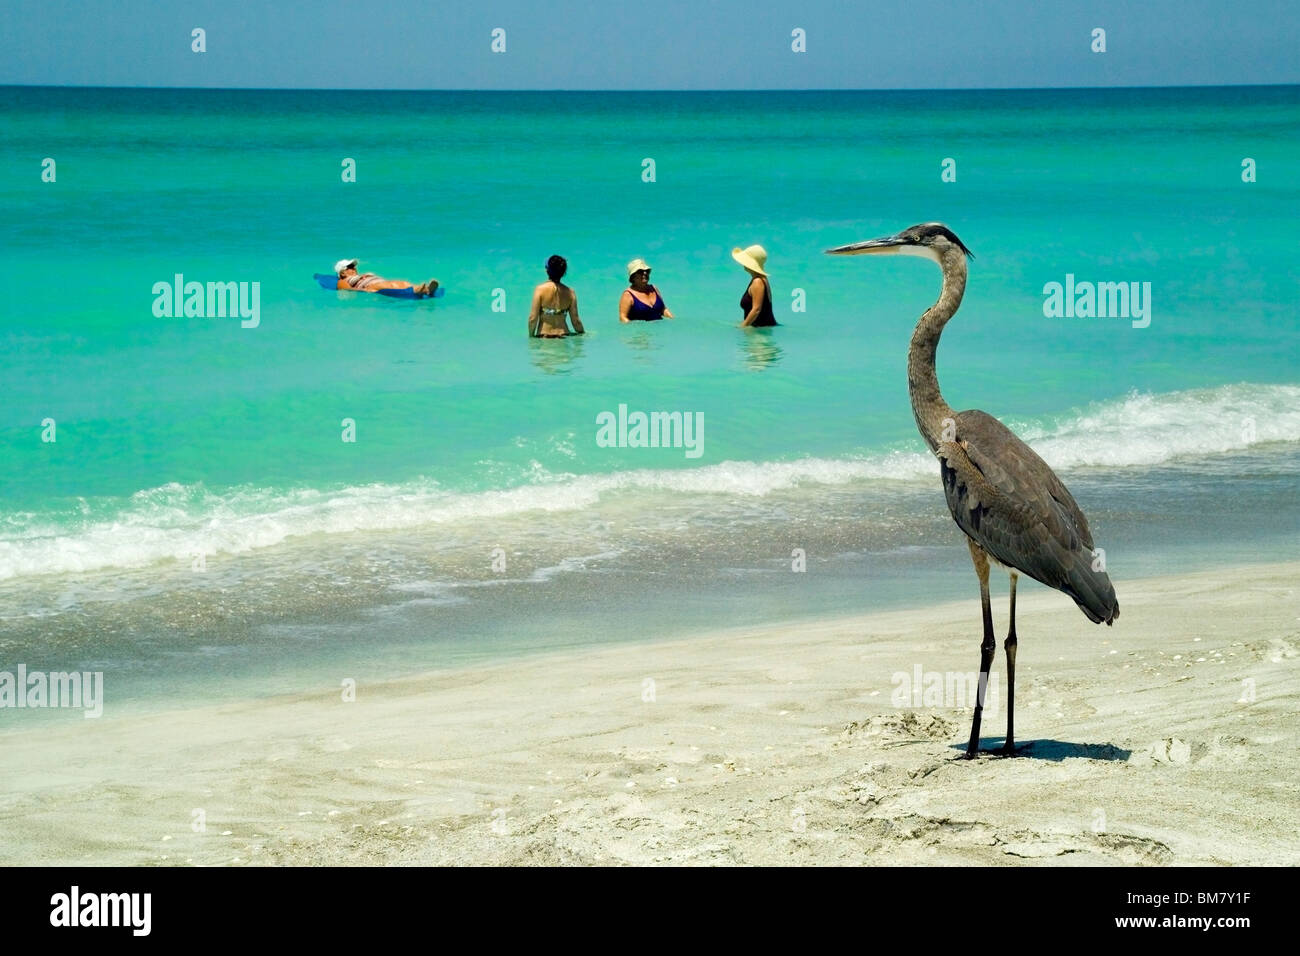 A Great Blue Heron eyes vacationers enjoying the warm waters of the Gulf of Mexico along Longboat Key at Sarasota - Stock Image